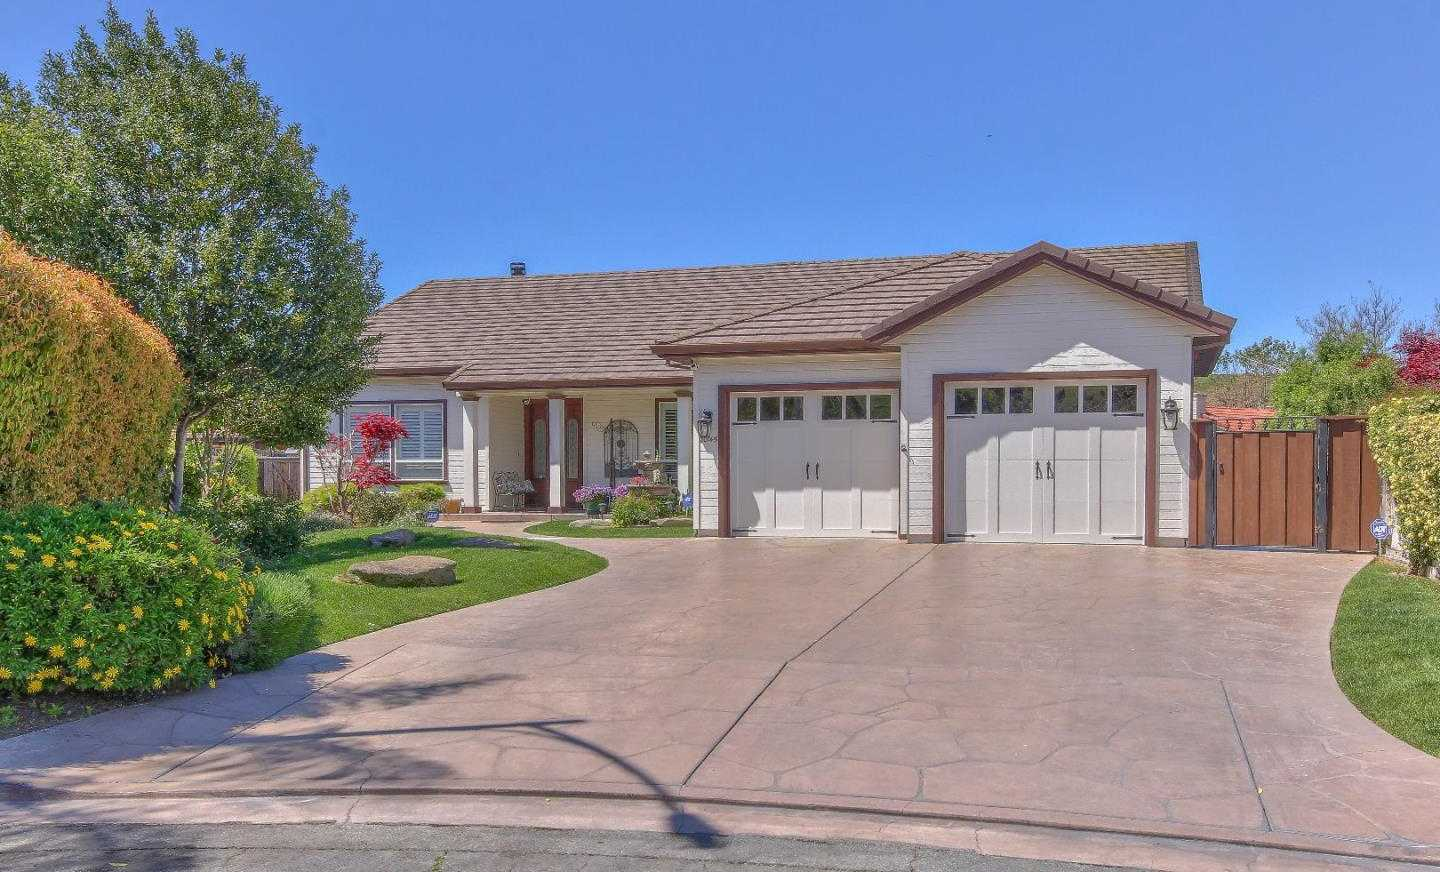 $1,198,000 - 4Br/3Ba -  for Sale in Salinas